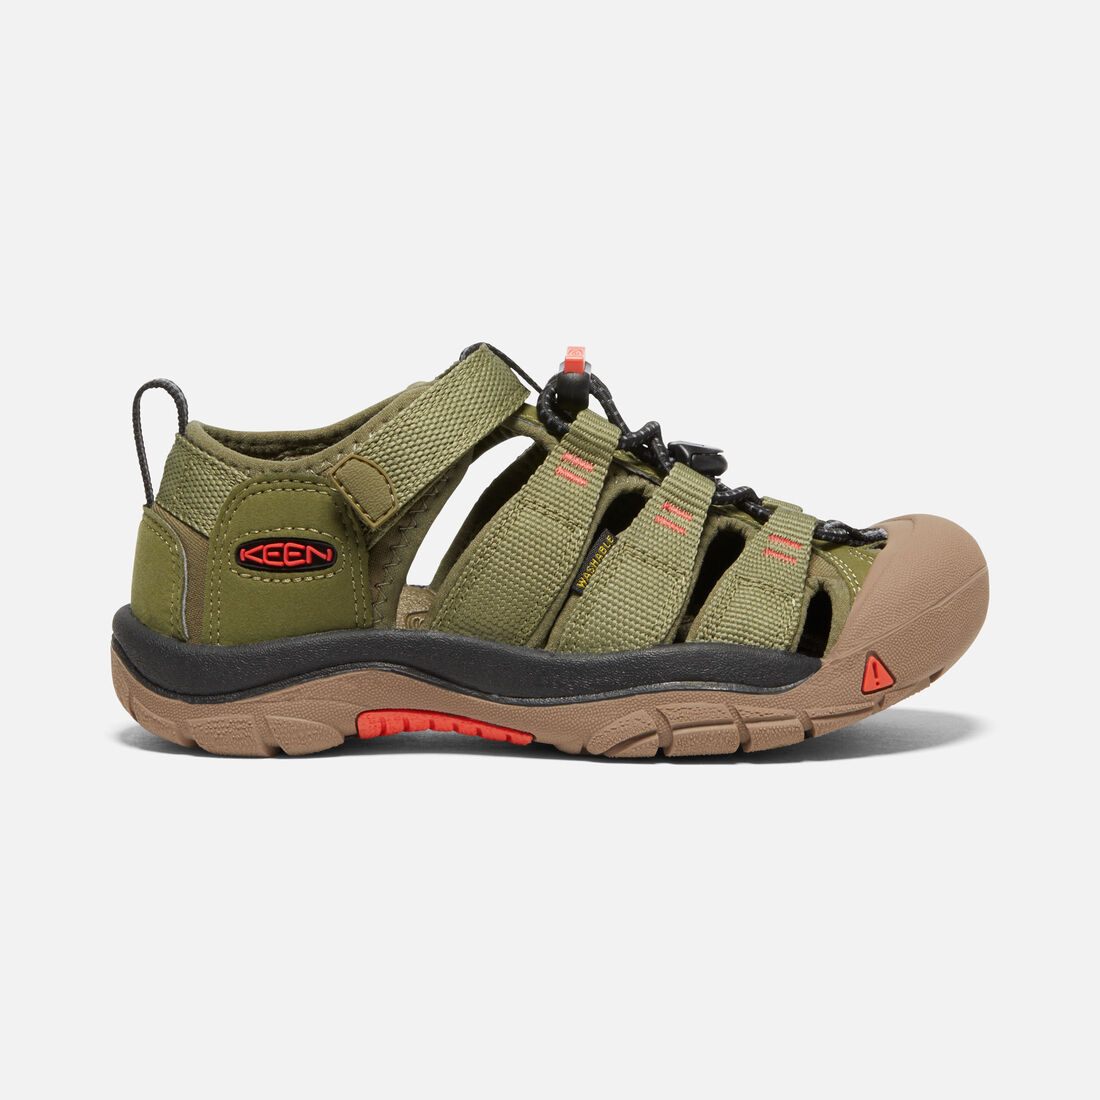 Little Kids' Newport H2 in Olive Drab/Orange - large view.